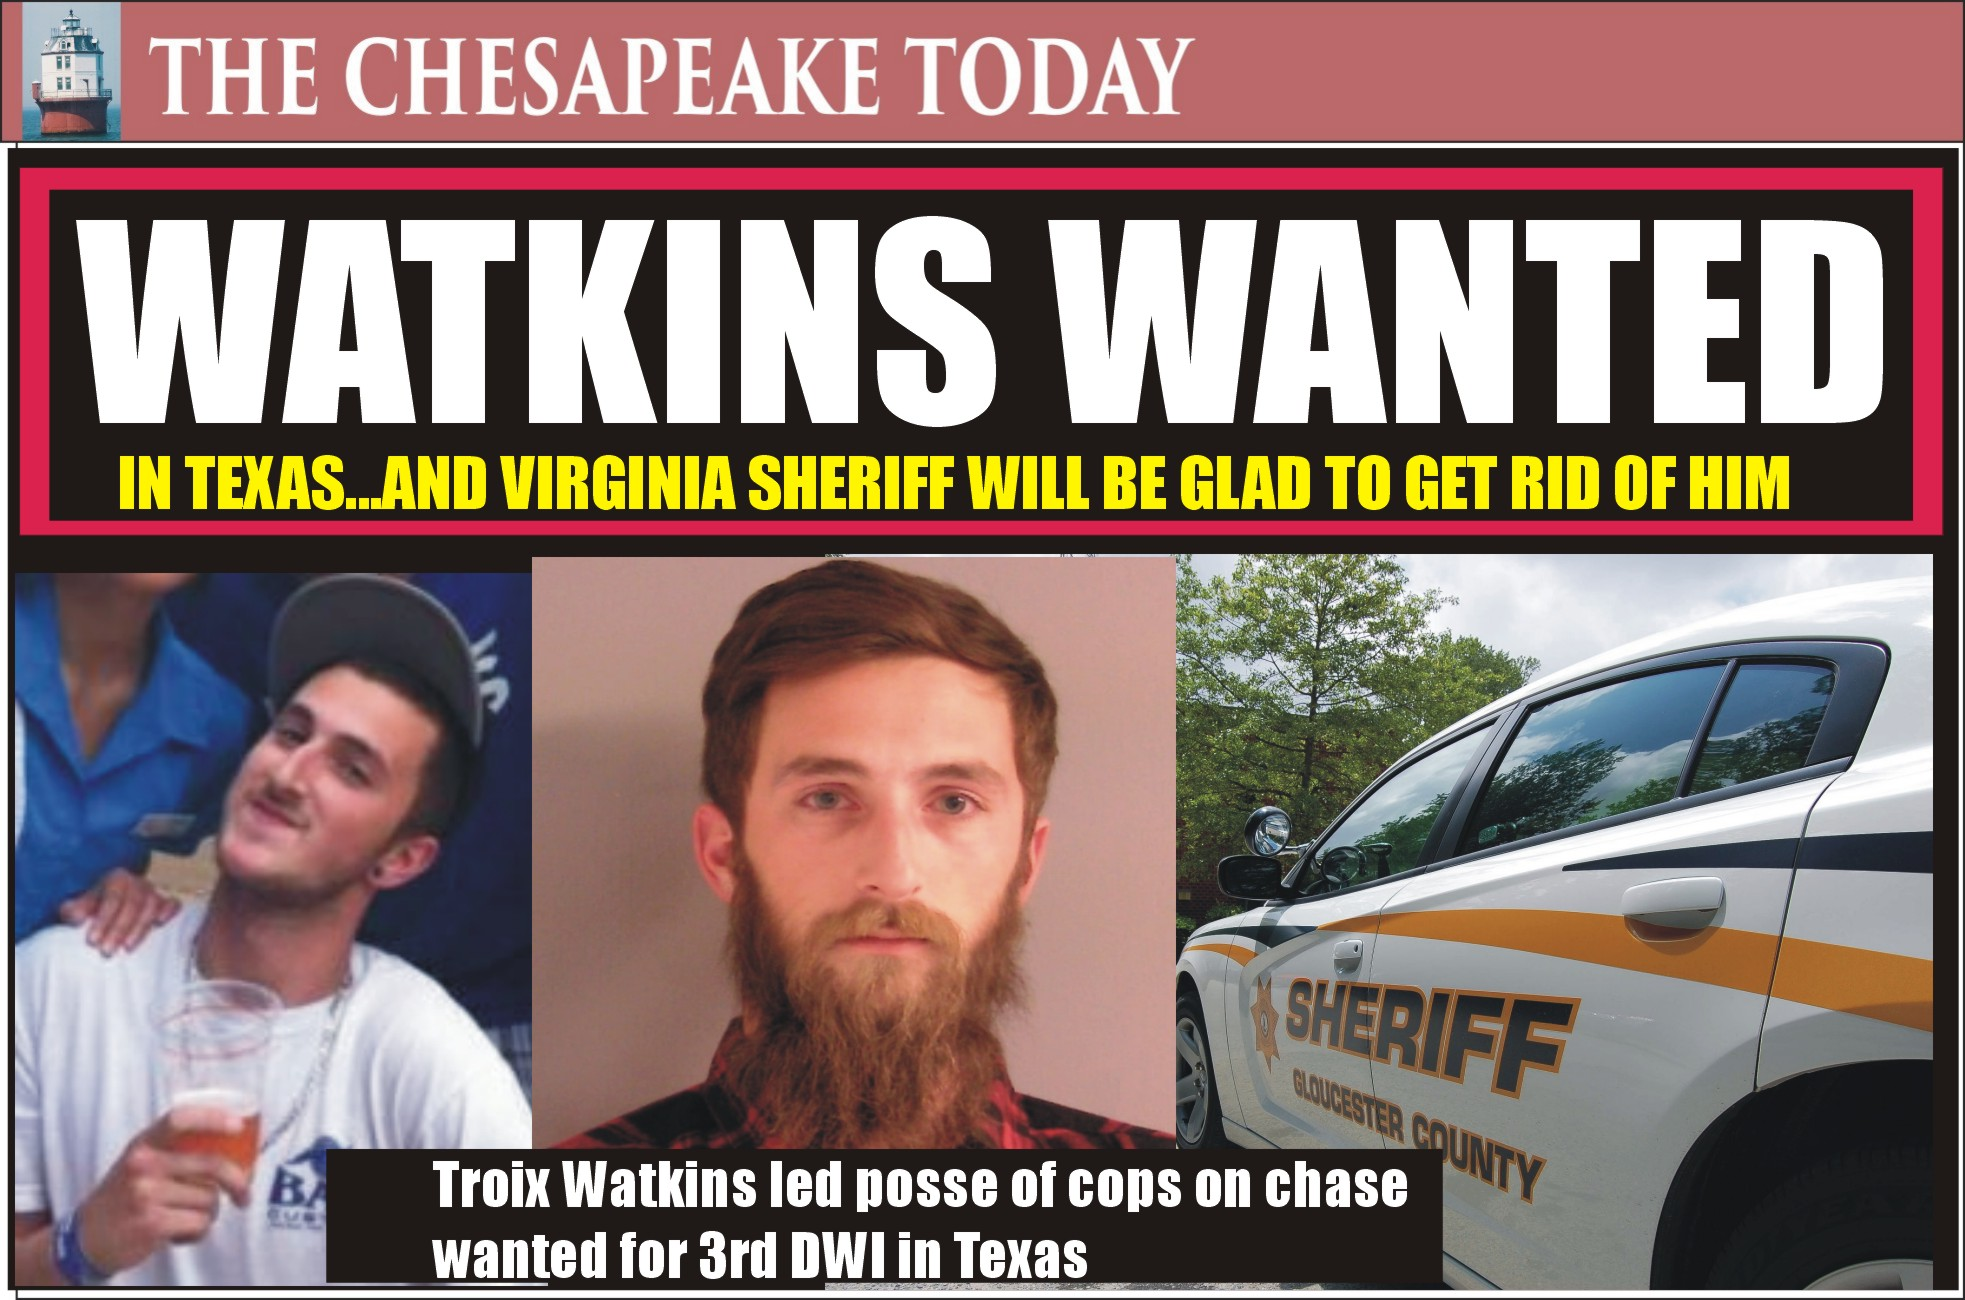 DWI HIT PARADE: Gloucester Sheriff reports Troix Craig Watkins fled from deputies was wanted for 3rd DWI and packing heat